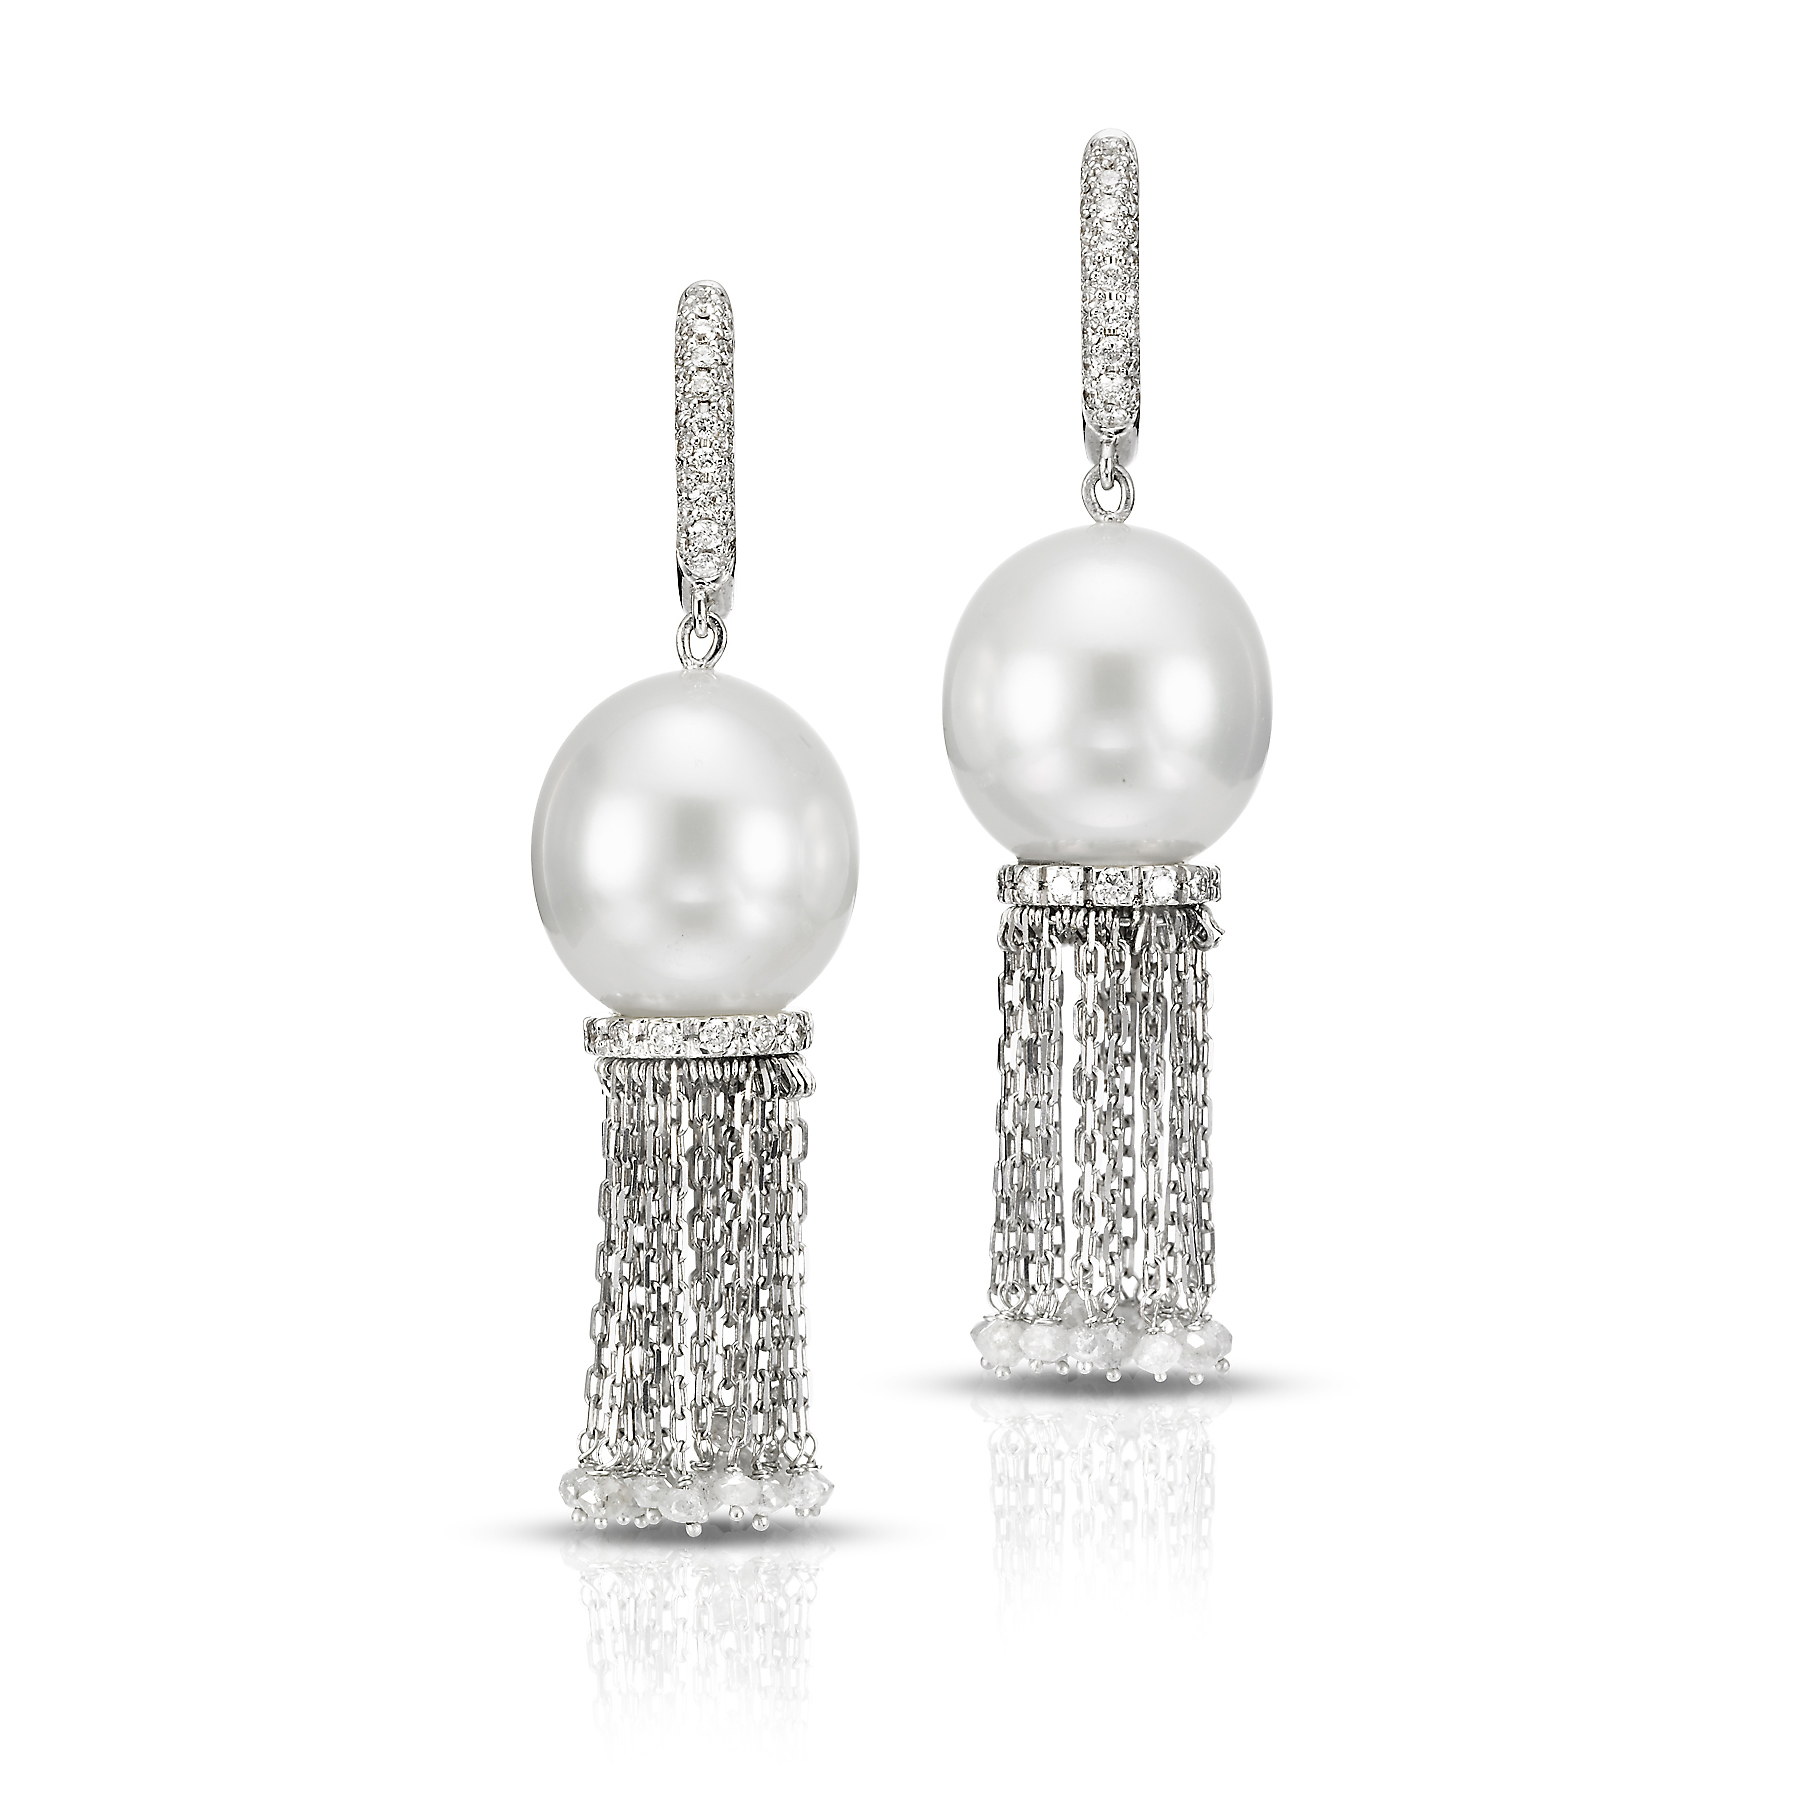 Mastoloni Fashion Earrings SWE-3712-2 product image